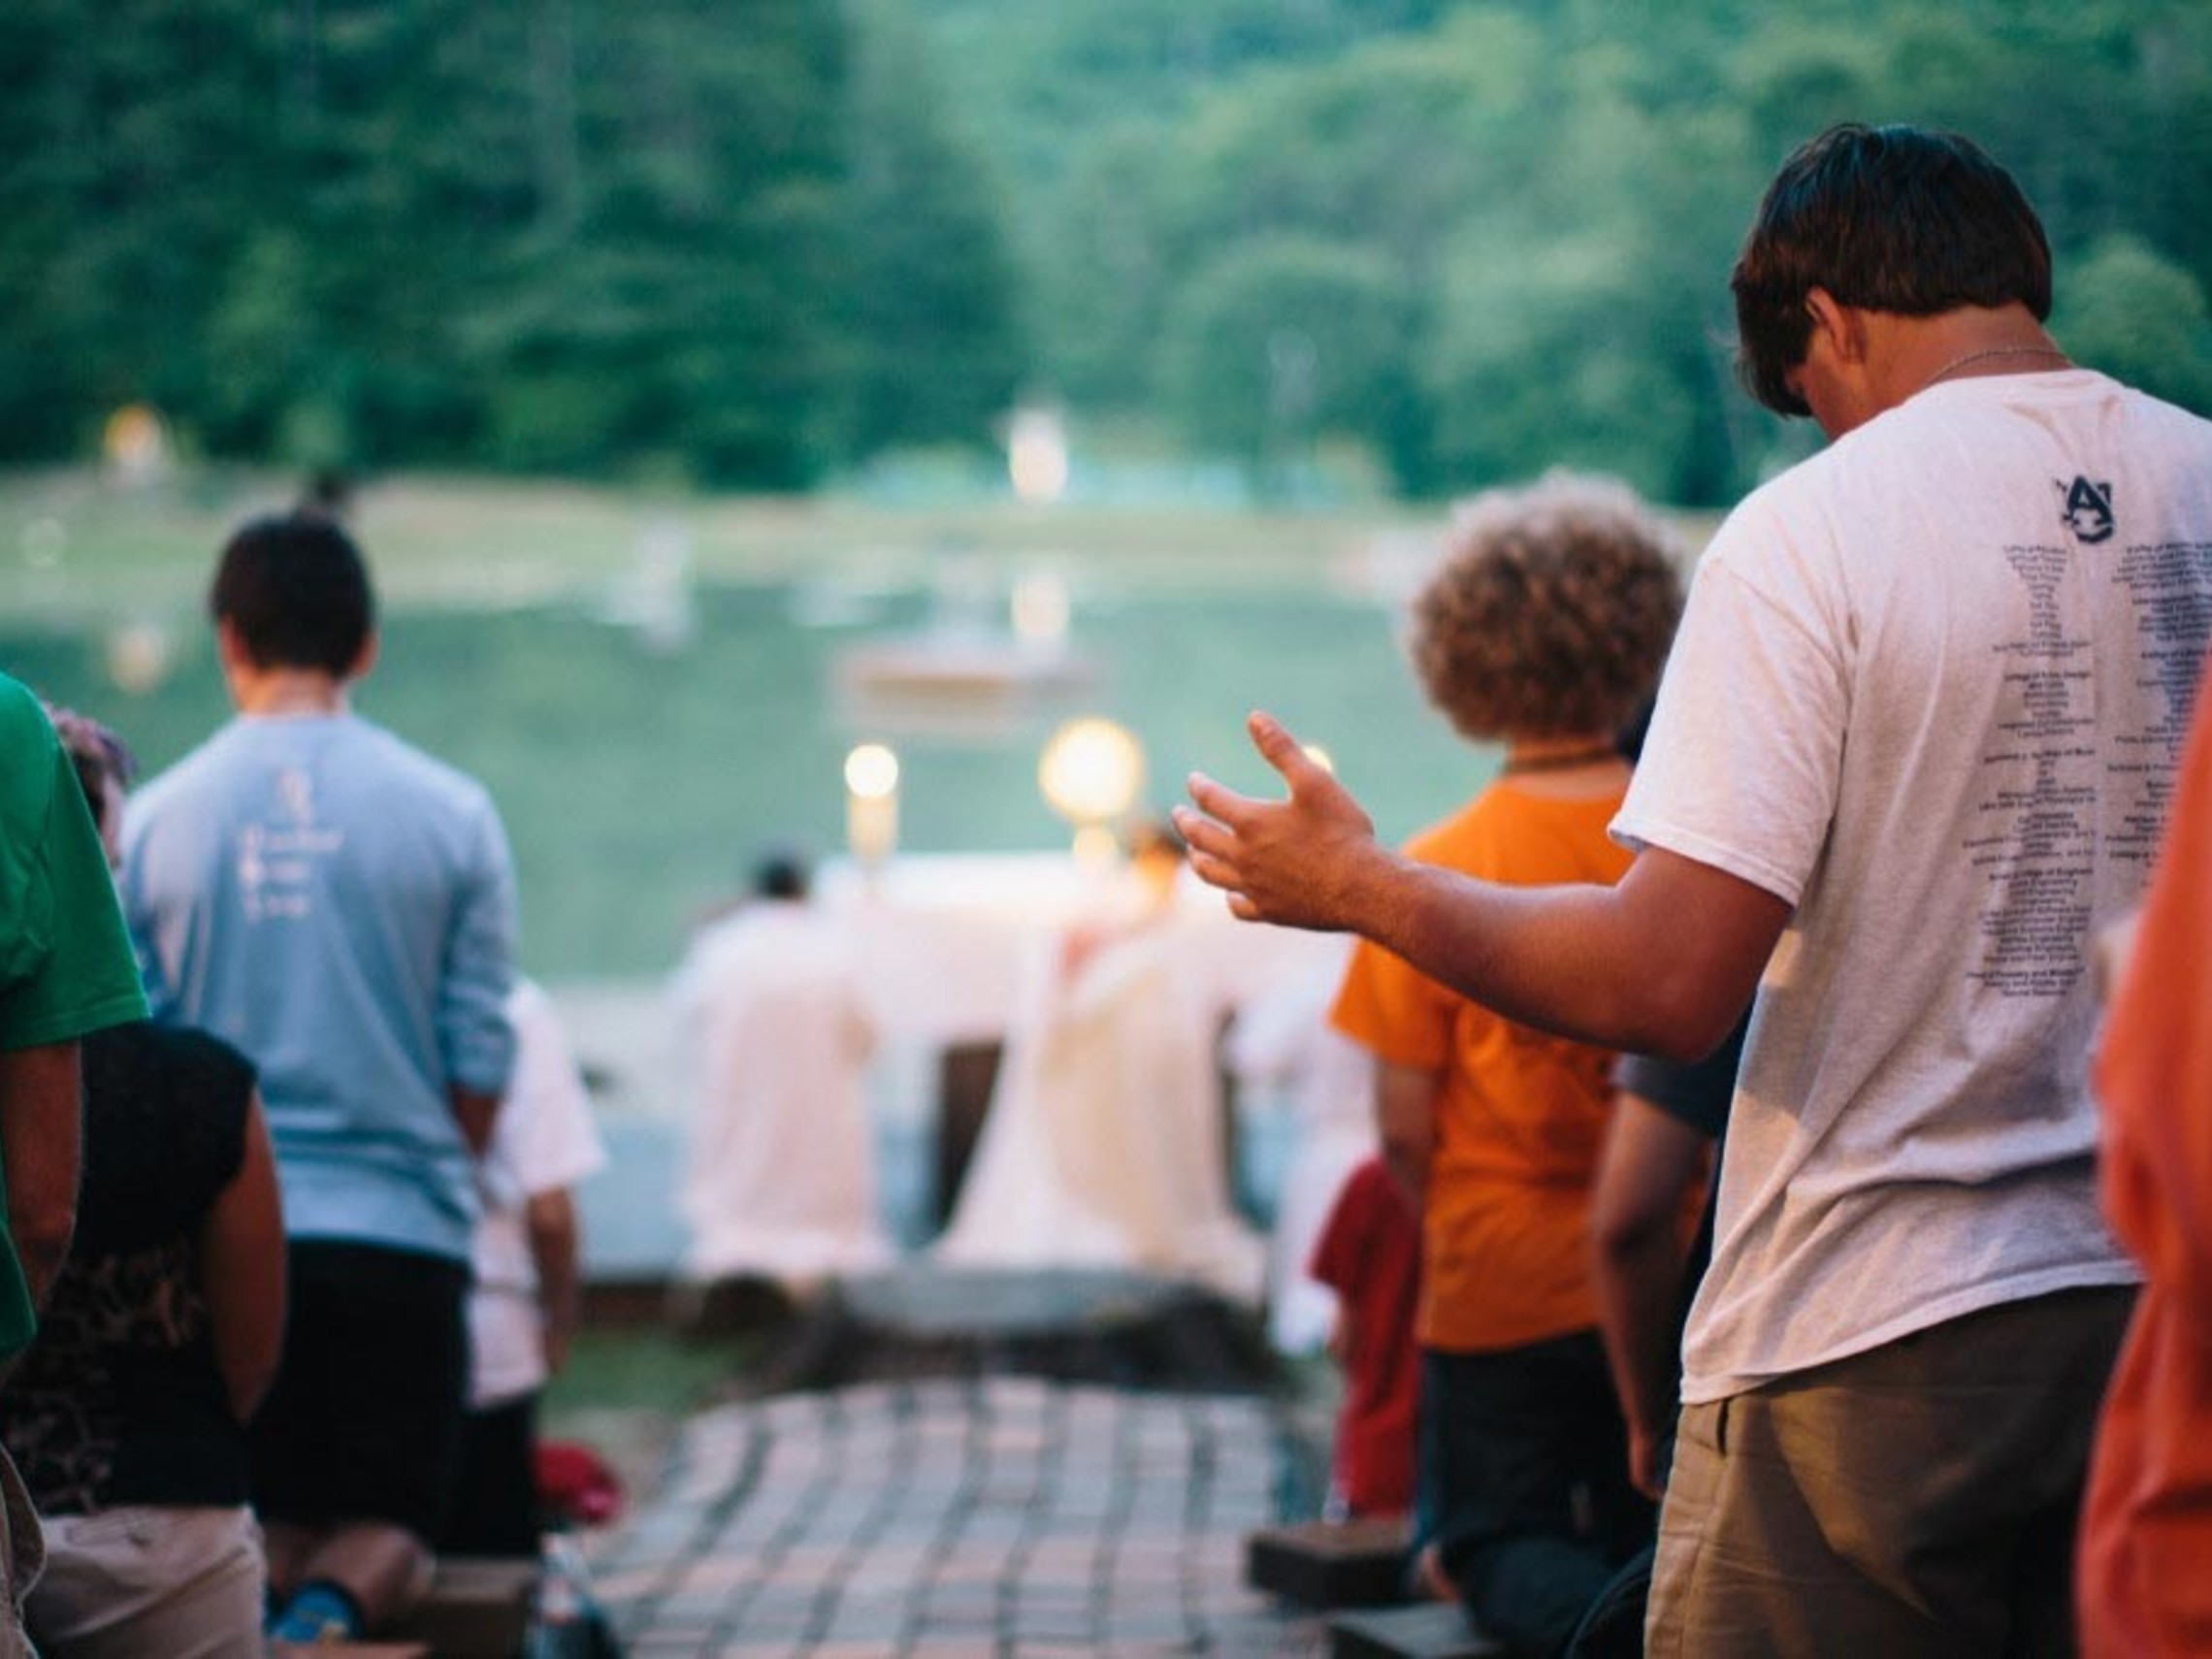 LT Summer Camp Daily Mass